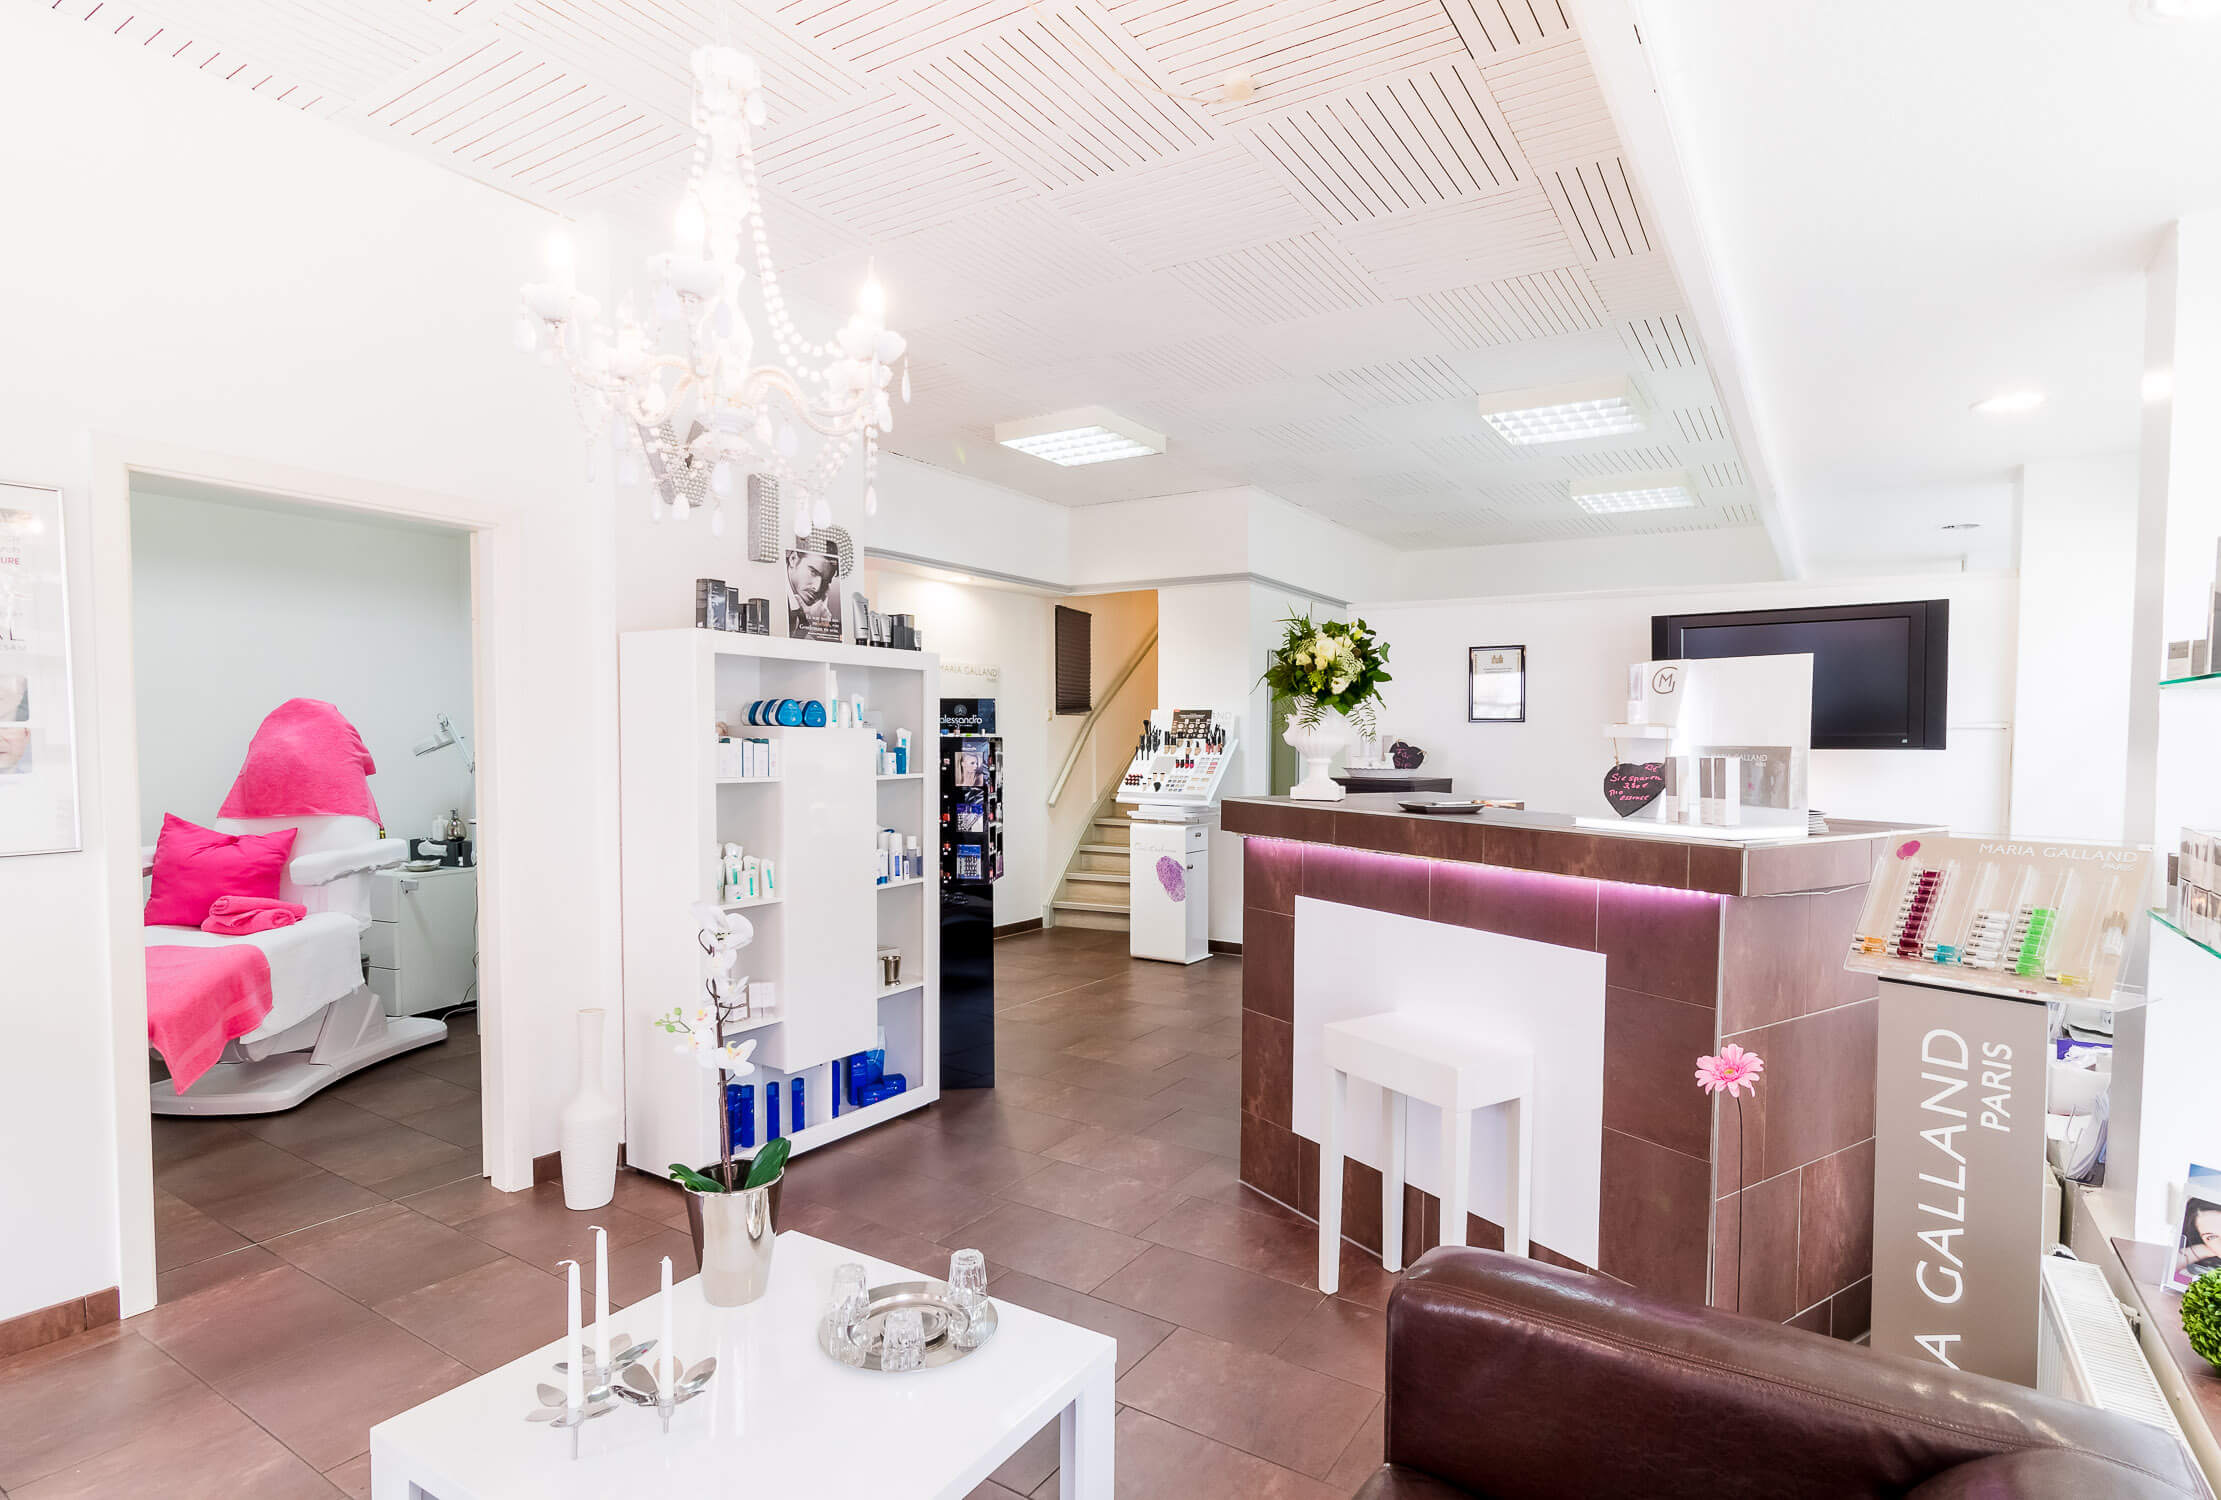 Beautysalon in Bremerhaven - Thorben Hofmann